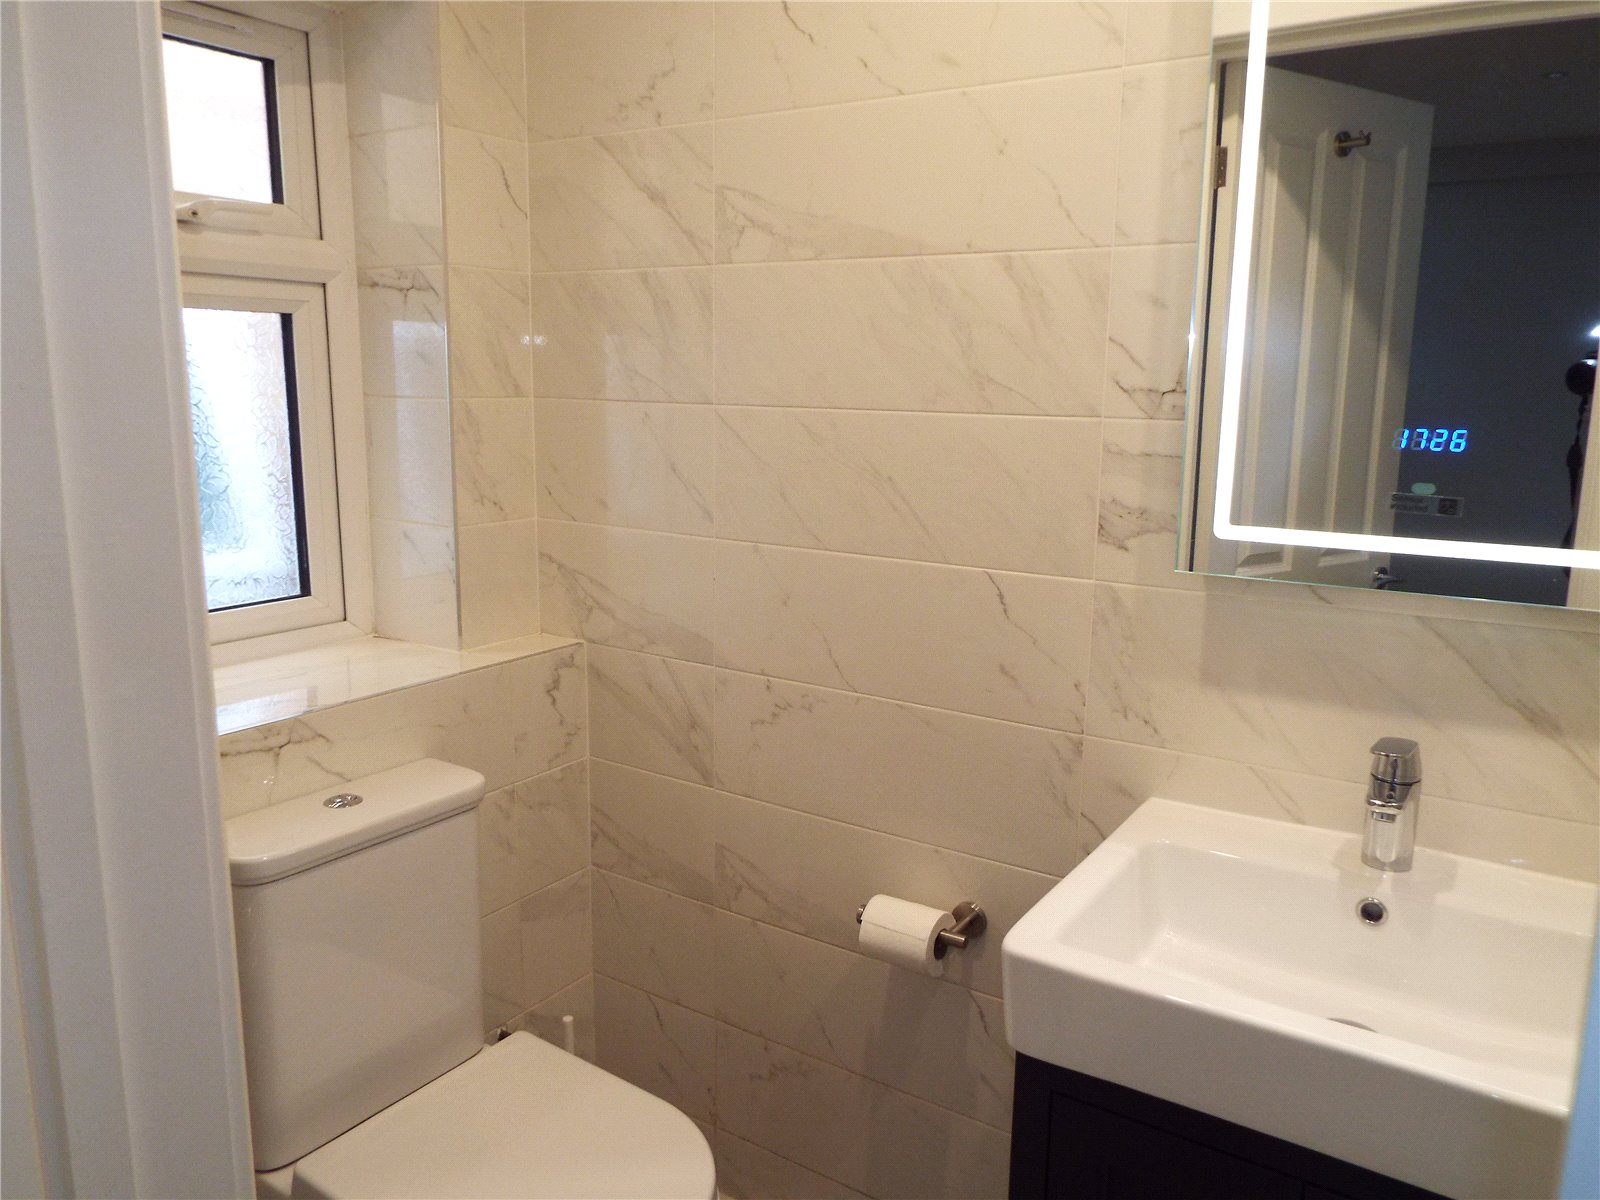 1 bed house to rent in Potters Bar, EN6 1EY 4